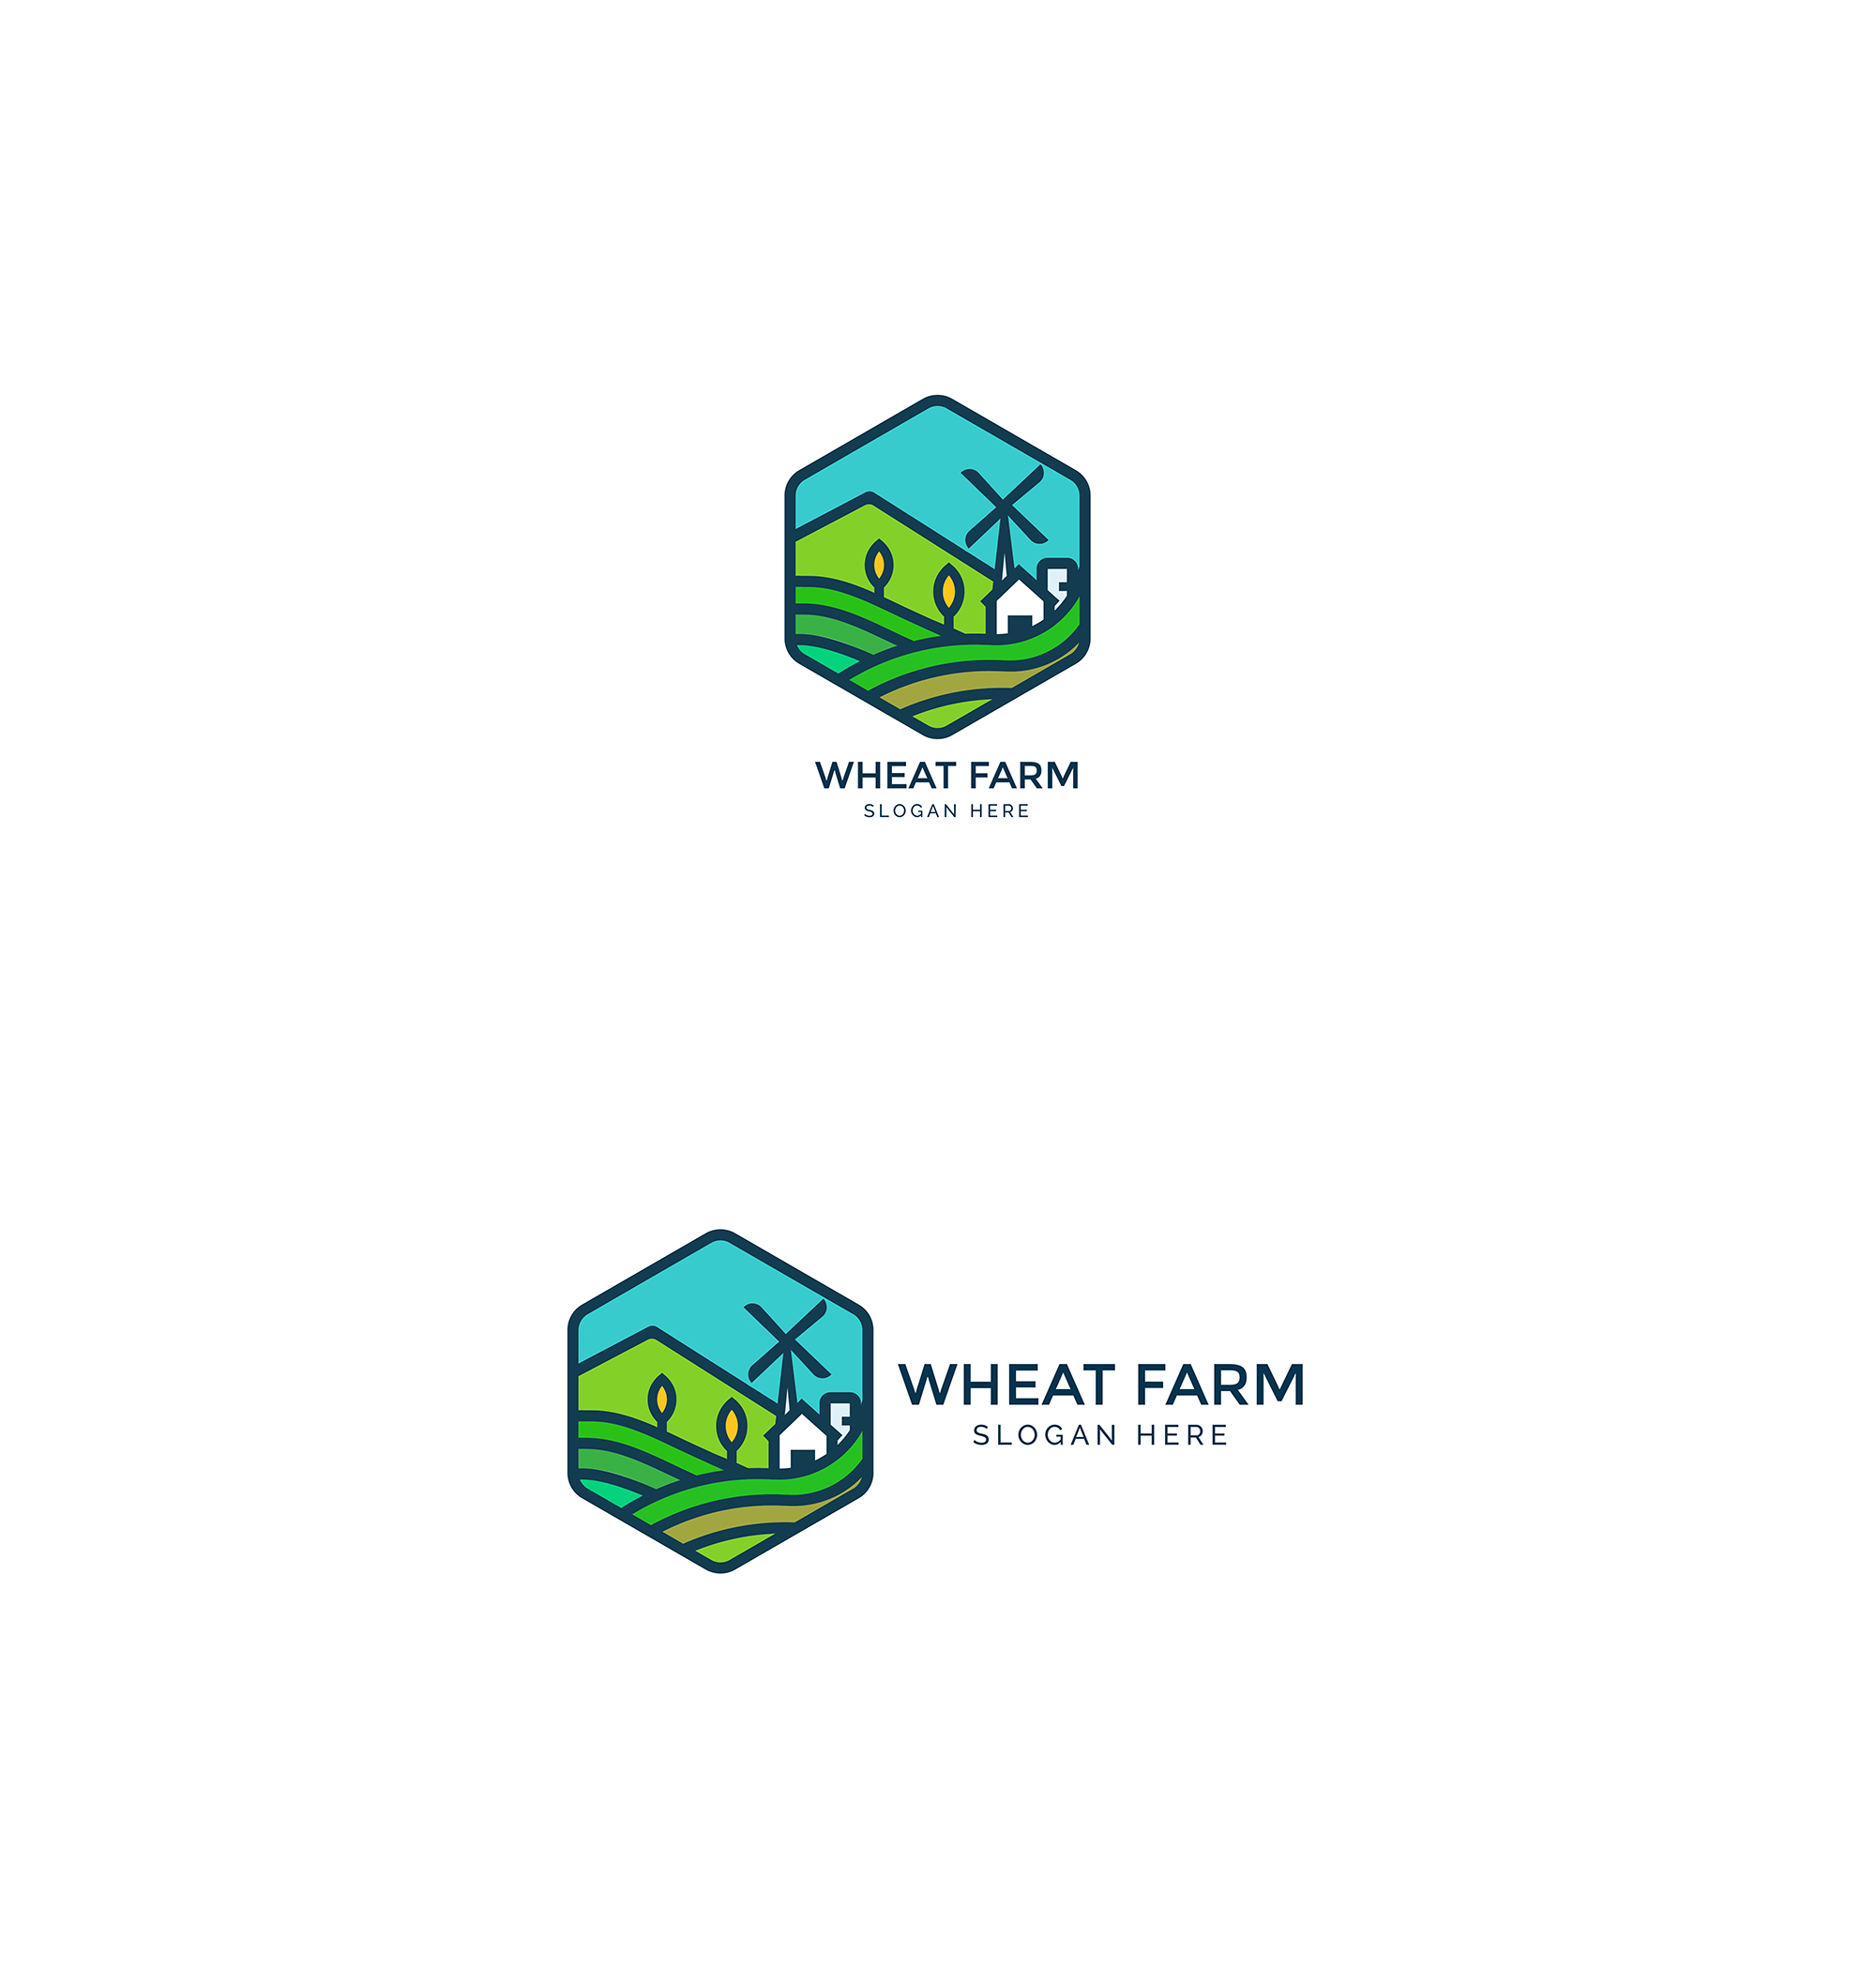 Agriculture - Wheat Farm Logo example image 4